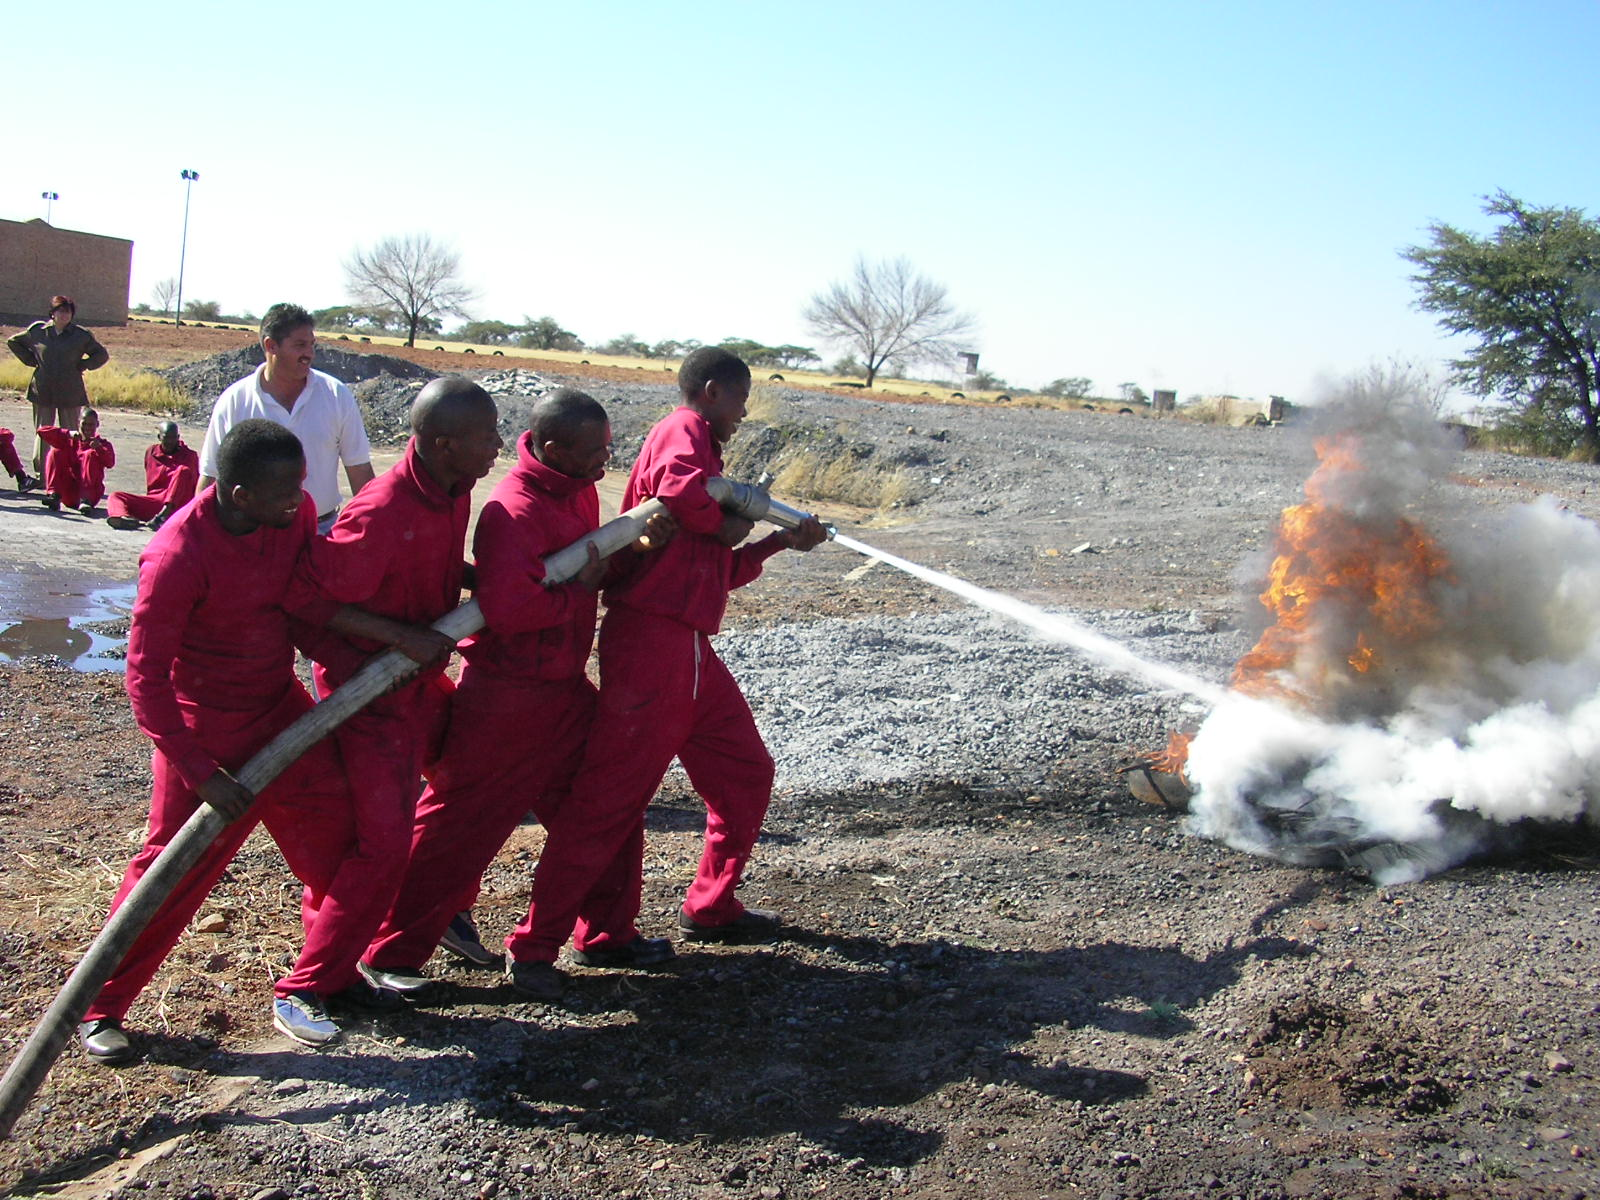 South Africa firefighters